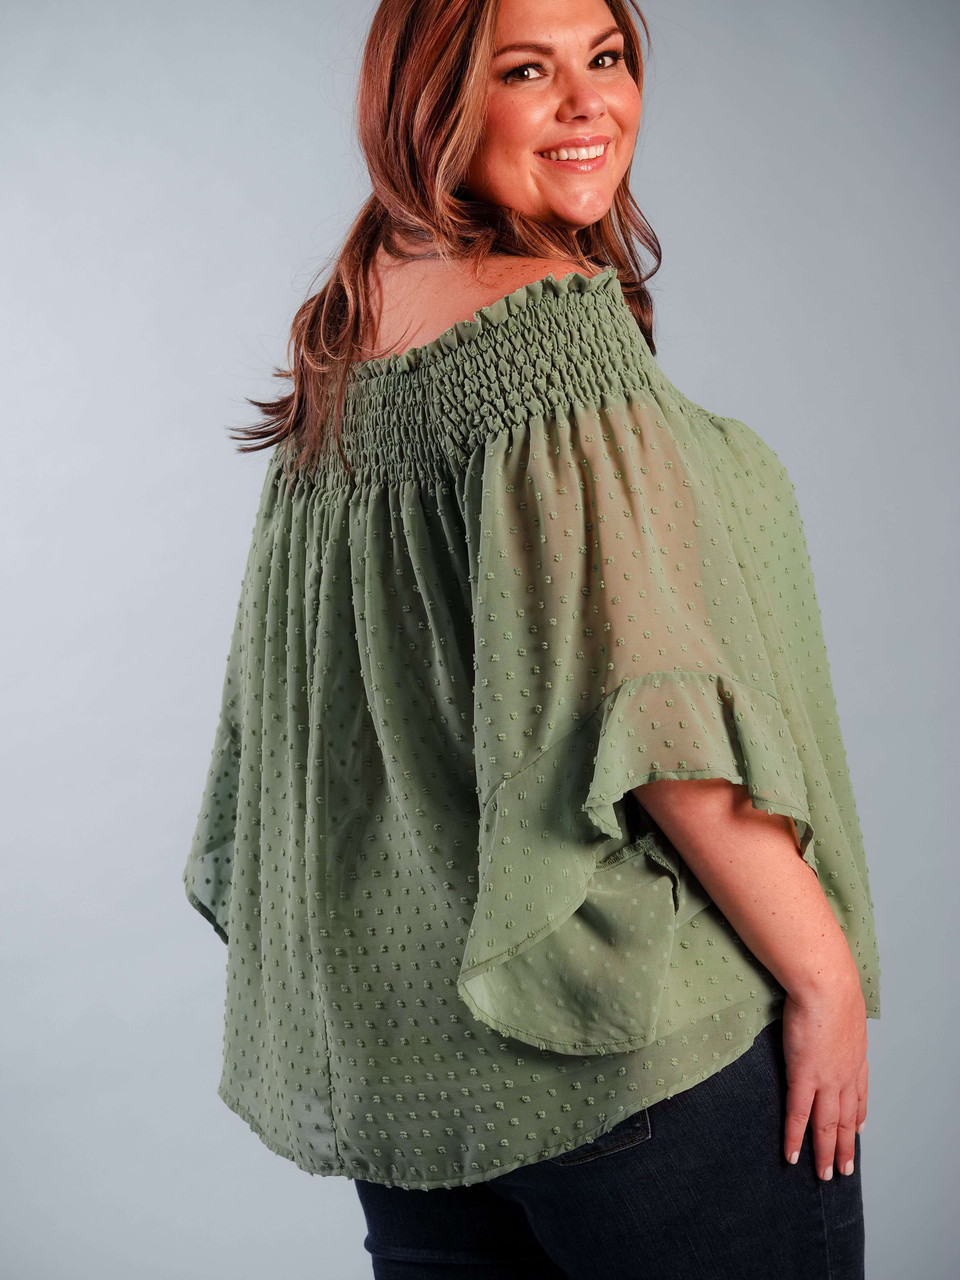 Lightweight sage green blouse, Lined & off-the-shoulder, Ruffled sleeve detail, Model is wearing a XL.